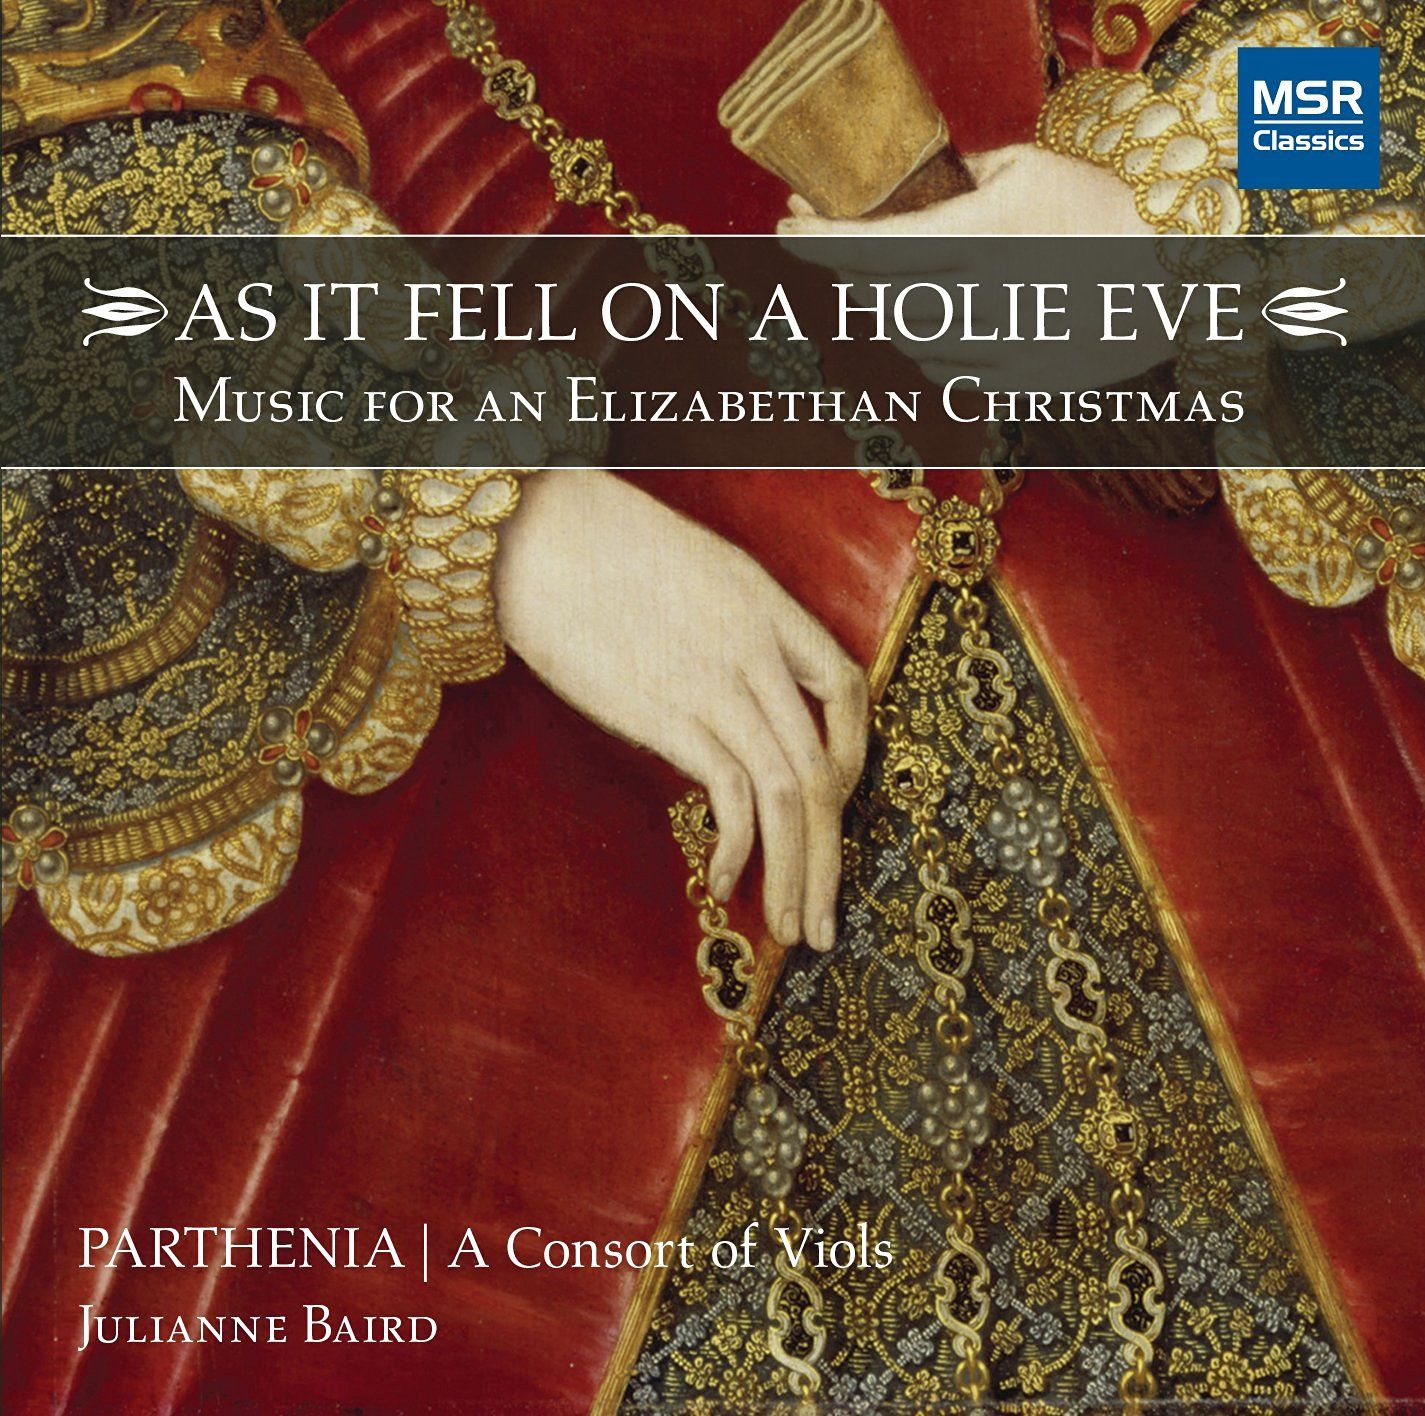 Parthenia - AS IT FELL ON A HOLIE EVE - Music for an Elizabethan Christmas